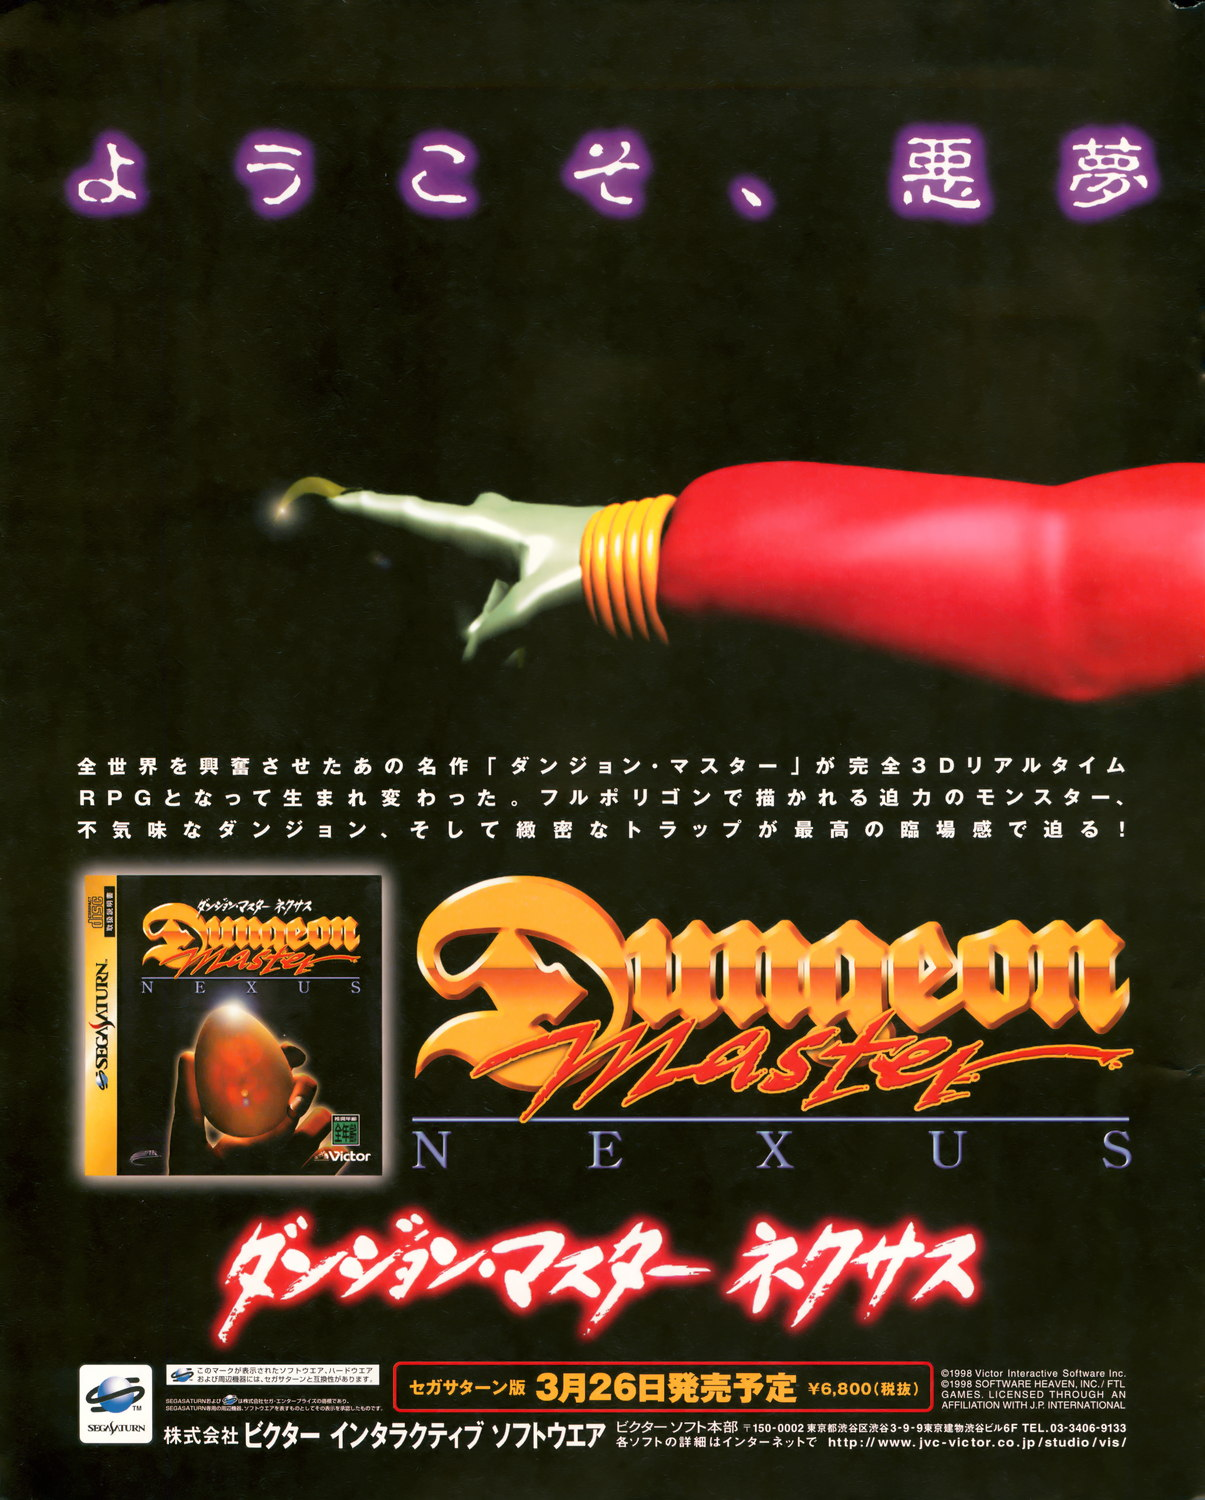 Dungeon Master Nexus Advertisement published in Japanese magazine 'Sega Saturn Magazine', Vol 9 27 March 1998, Page 2